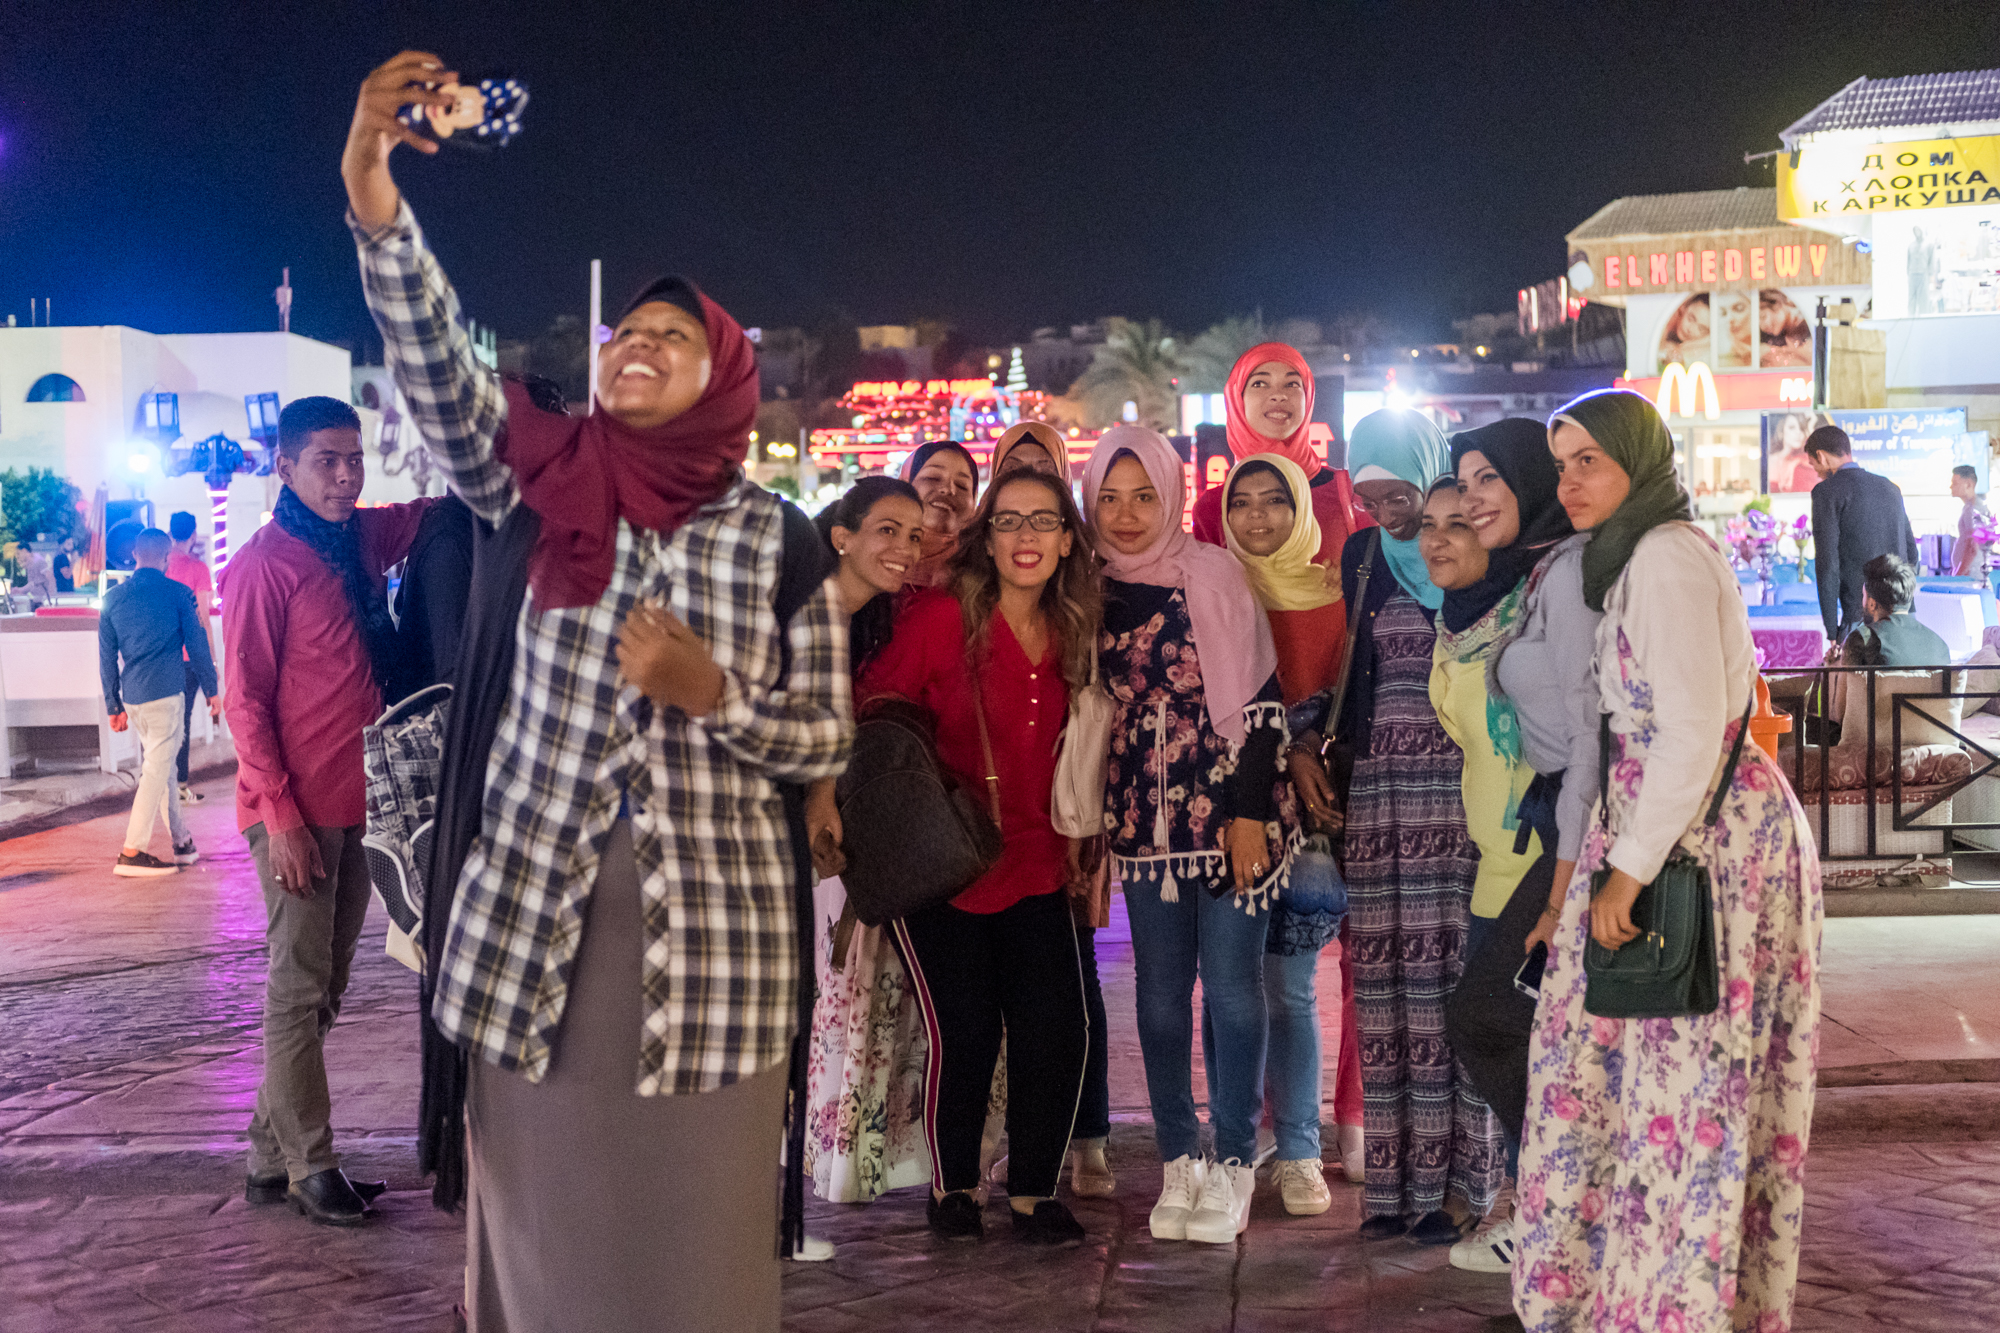 Ingy Helal (center in red) joins the initial group of 15 participant trainees for an outing at Naama Bay Night Market.